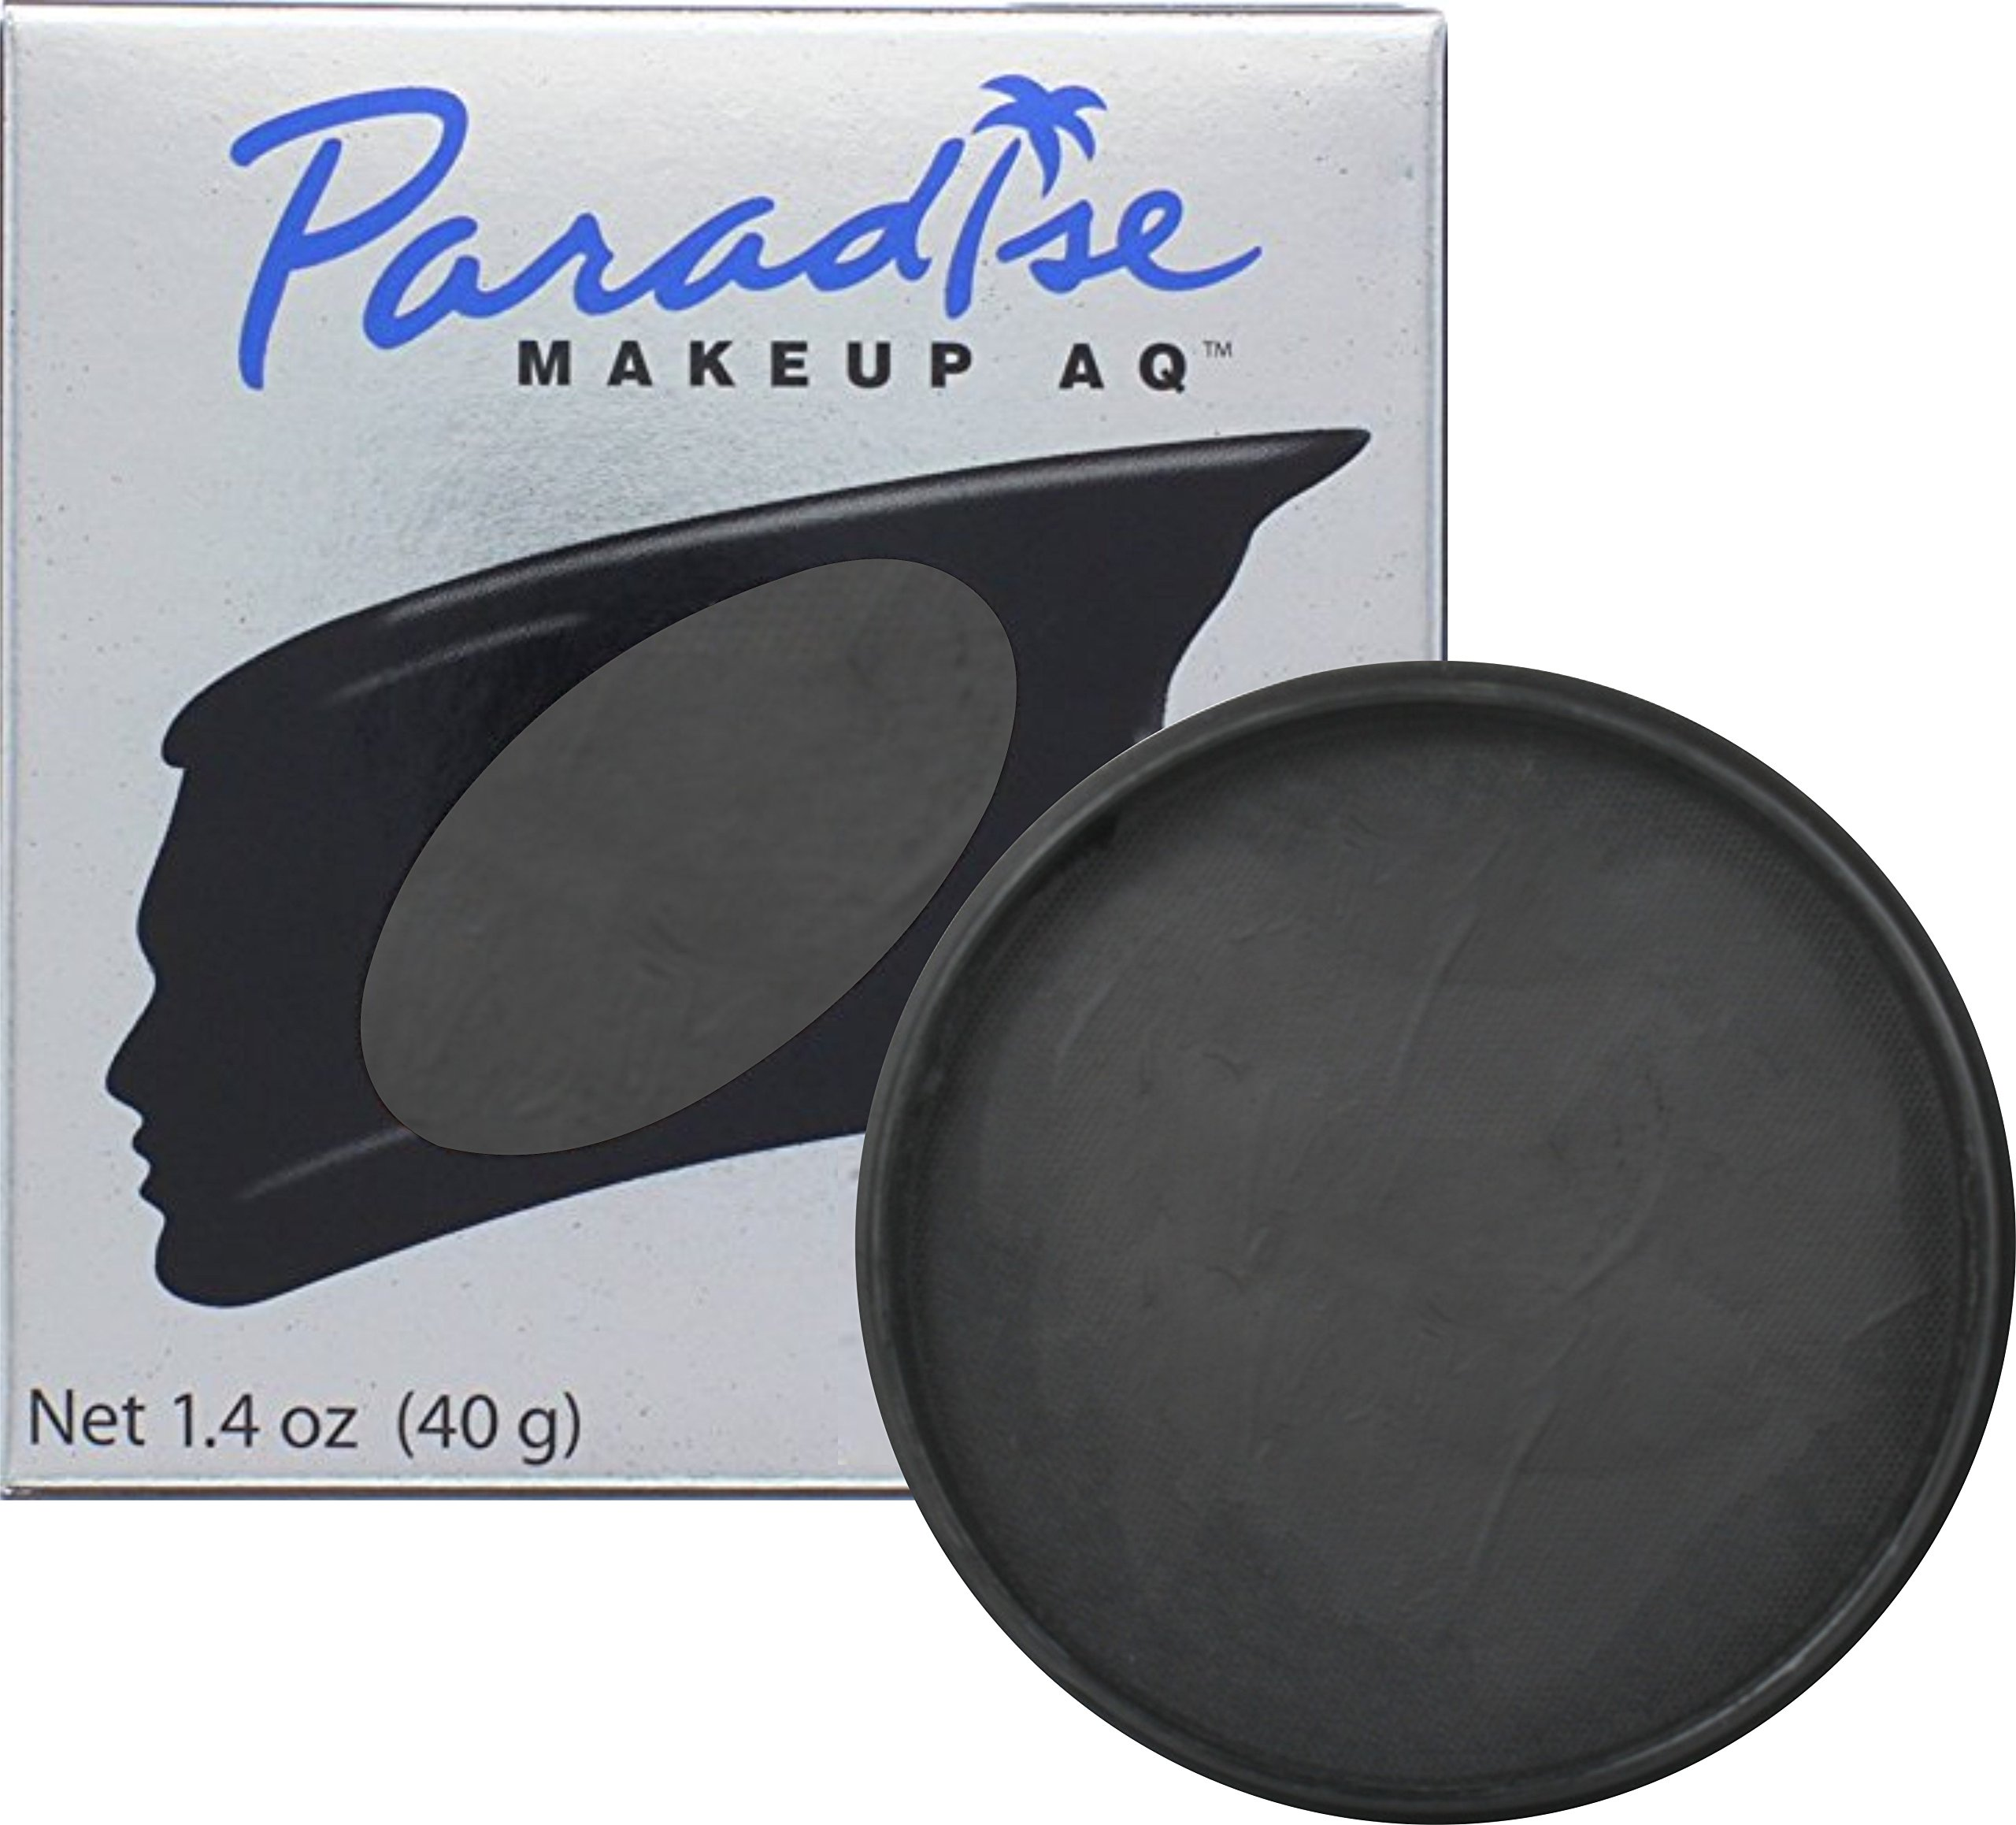 Mehron Makeup Paradise AQ Face & Body Paint, BLACK: Basic Series – 40gm